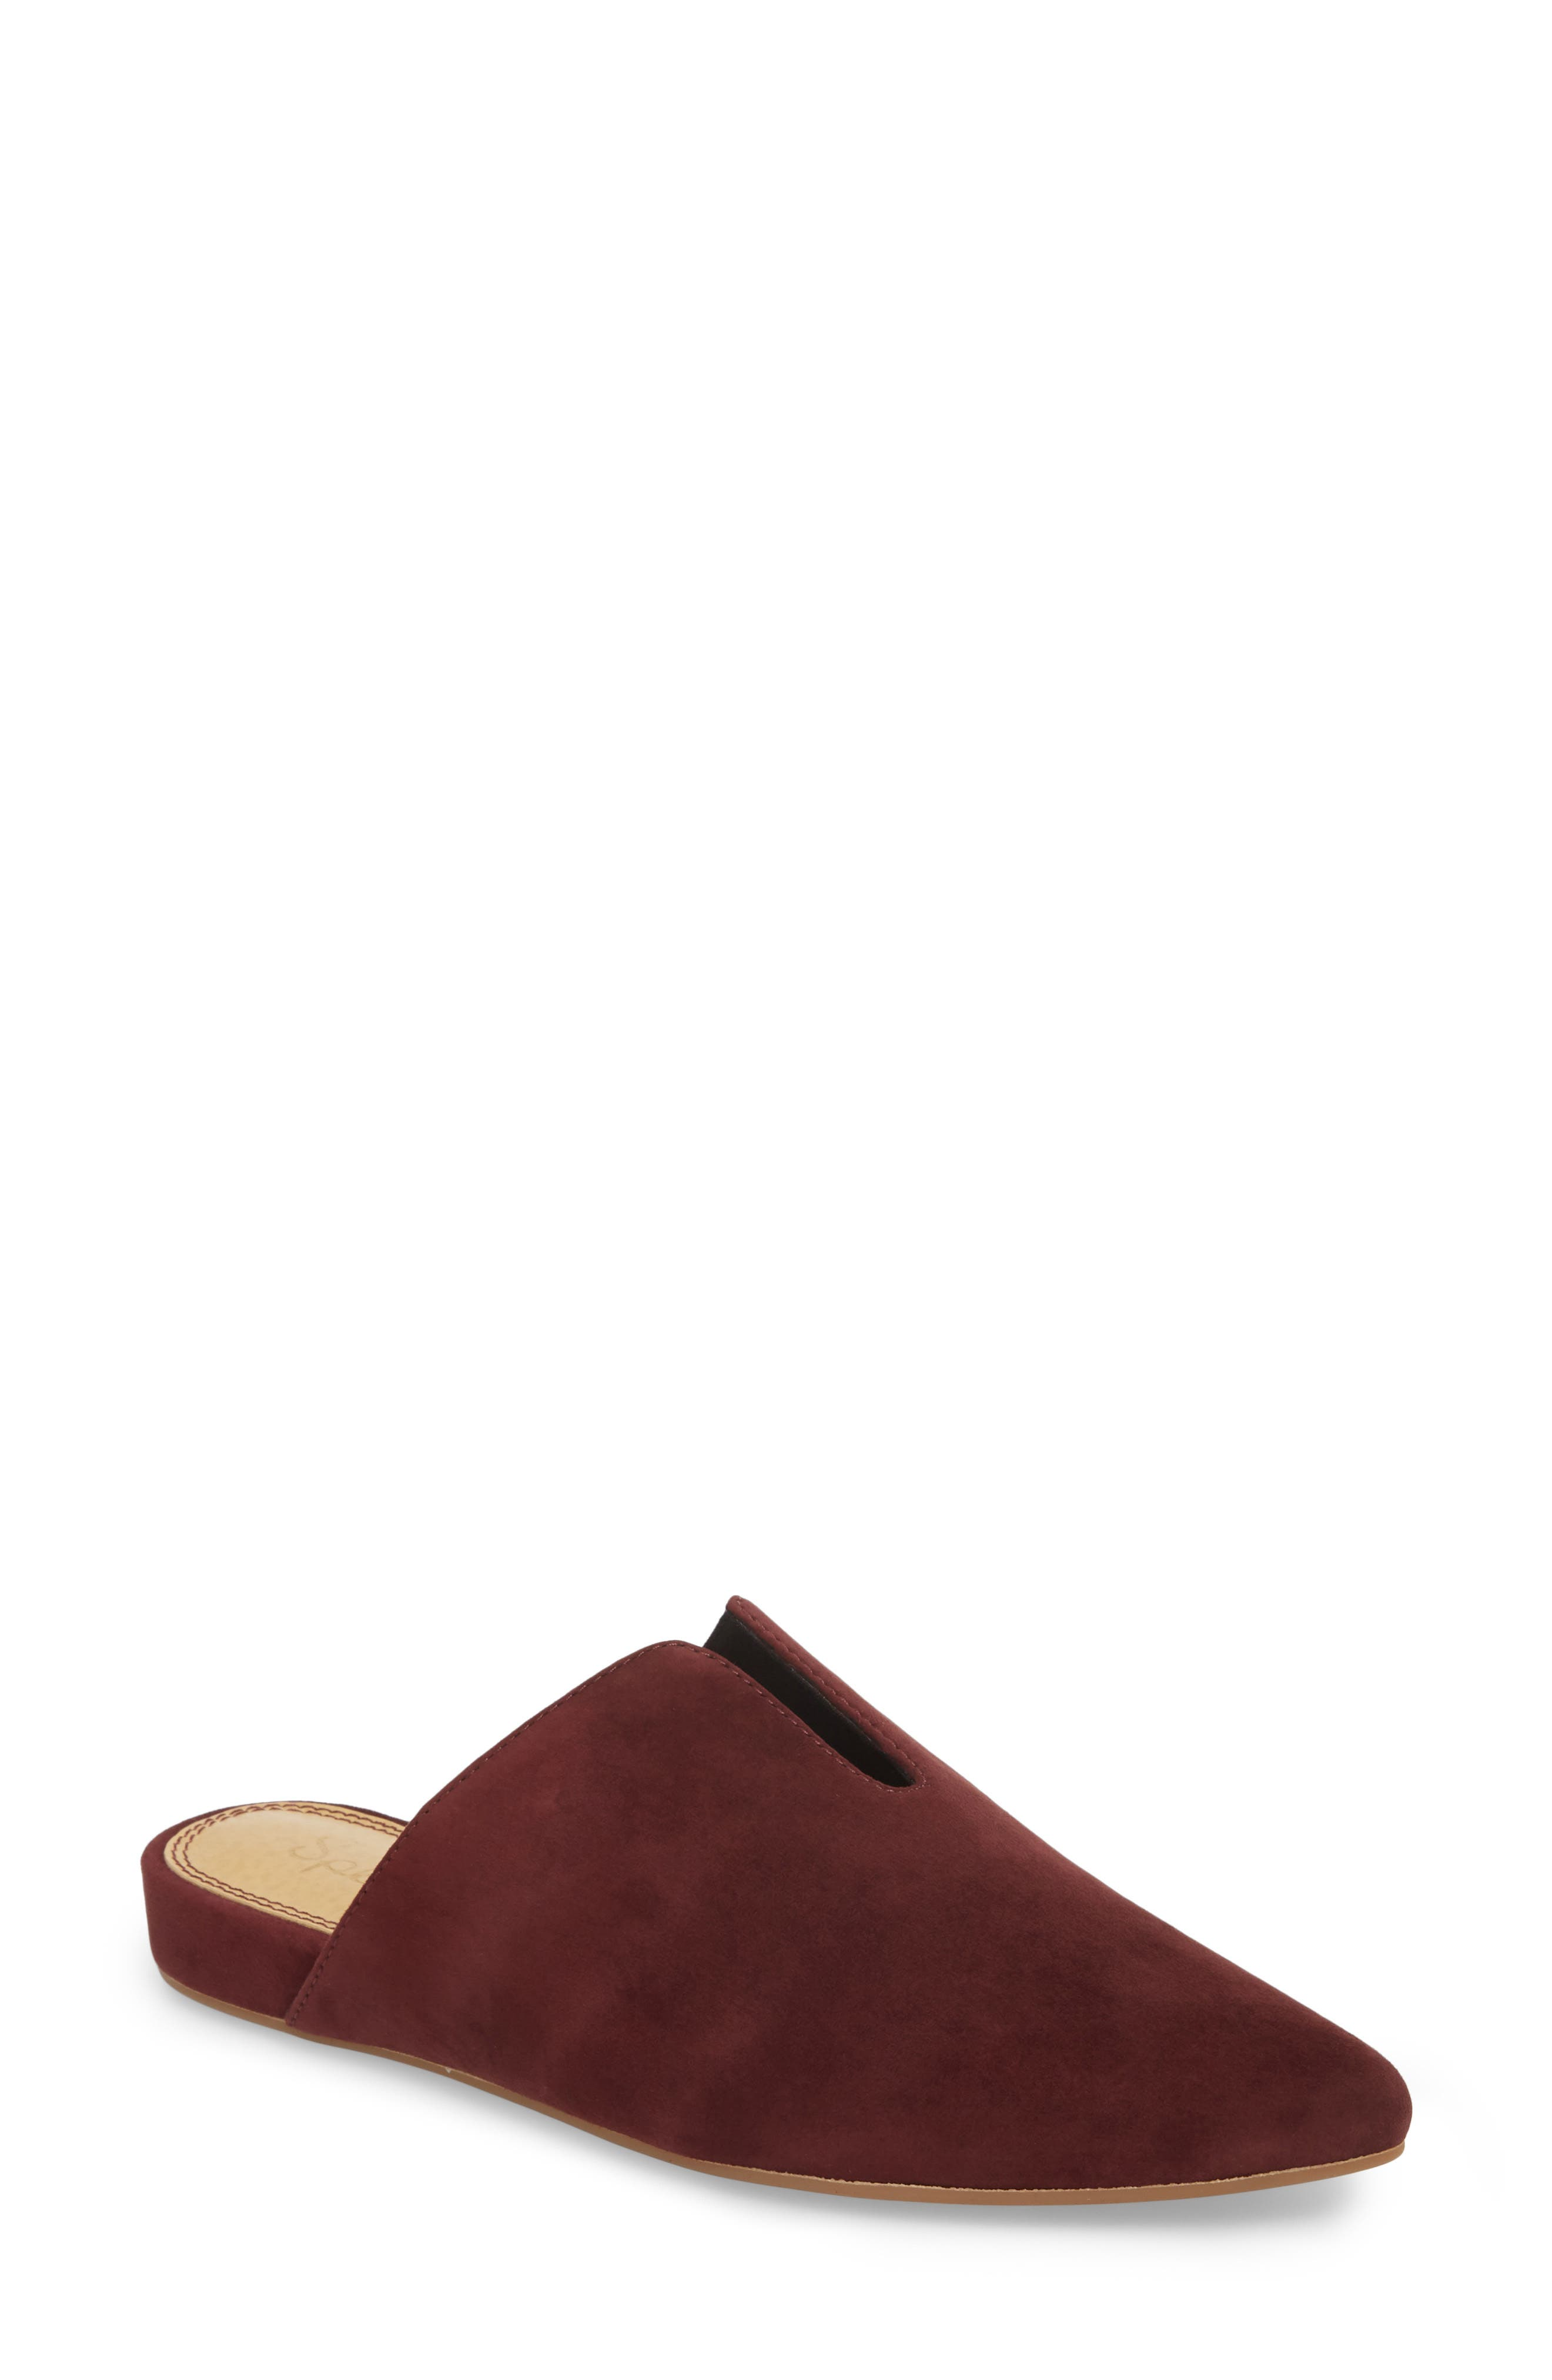 Nieves Mule,                         Main,                         color, DEEP PLUM SUEDE